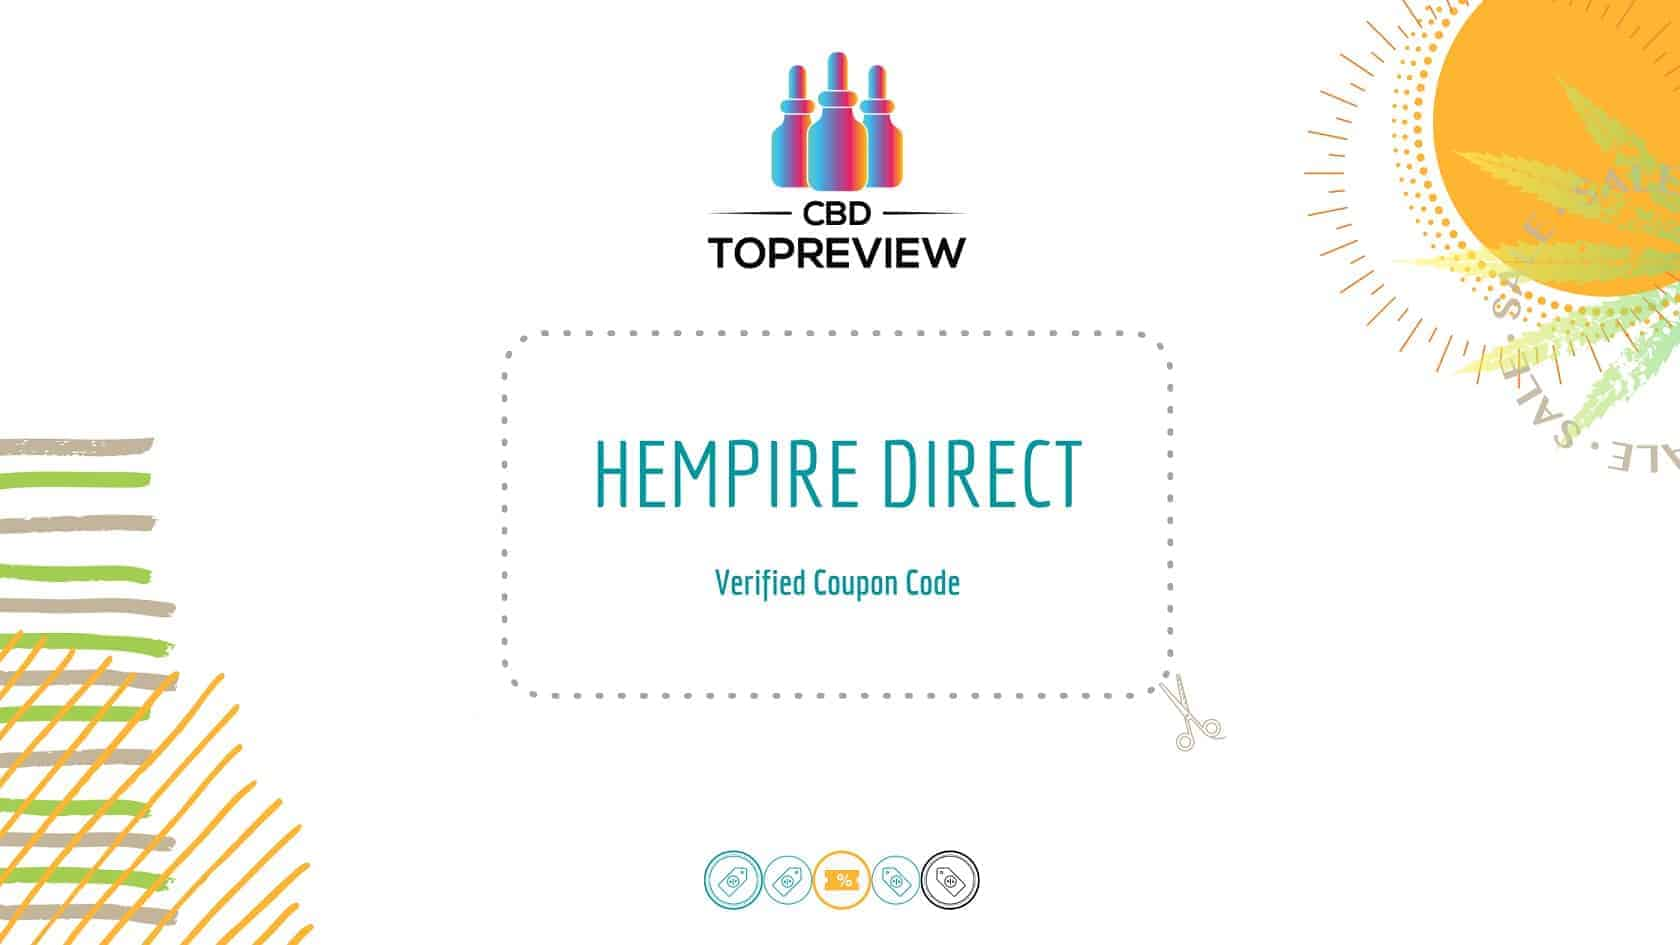 Hempire Direct coupon: 25% off verified promo code